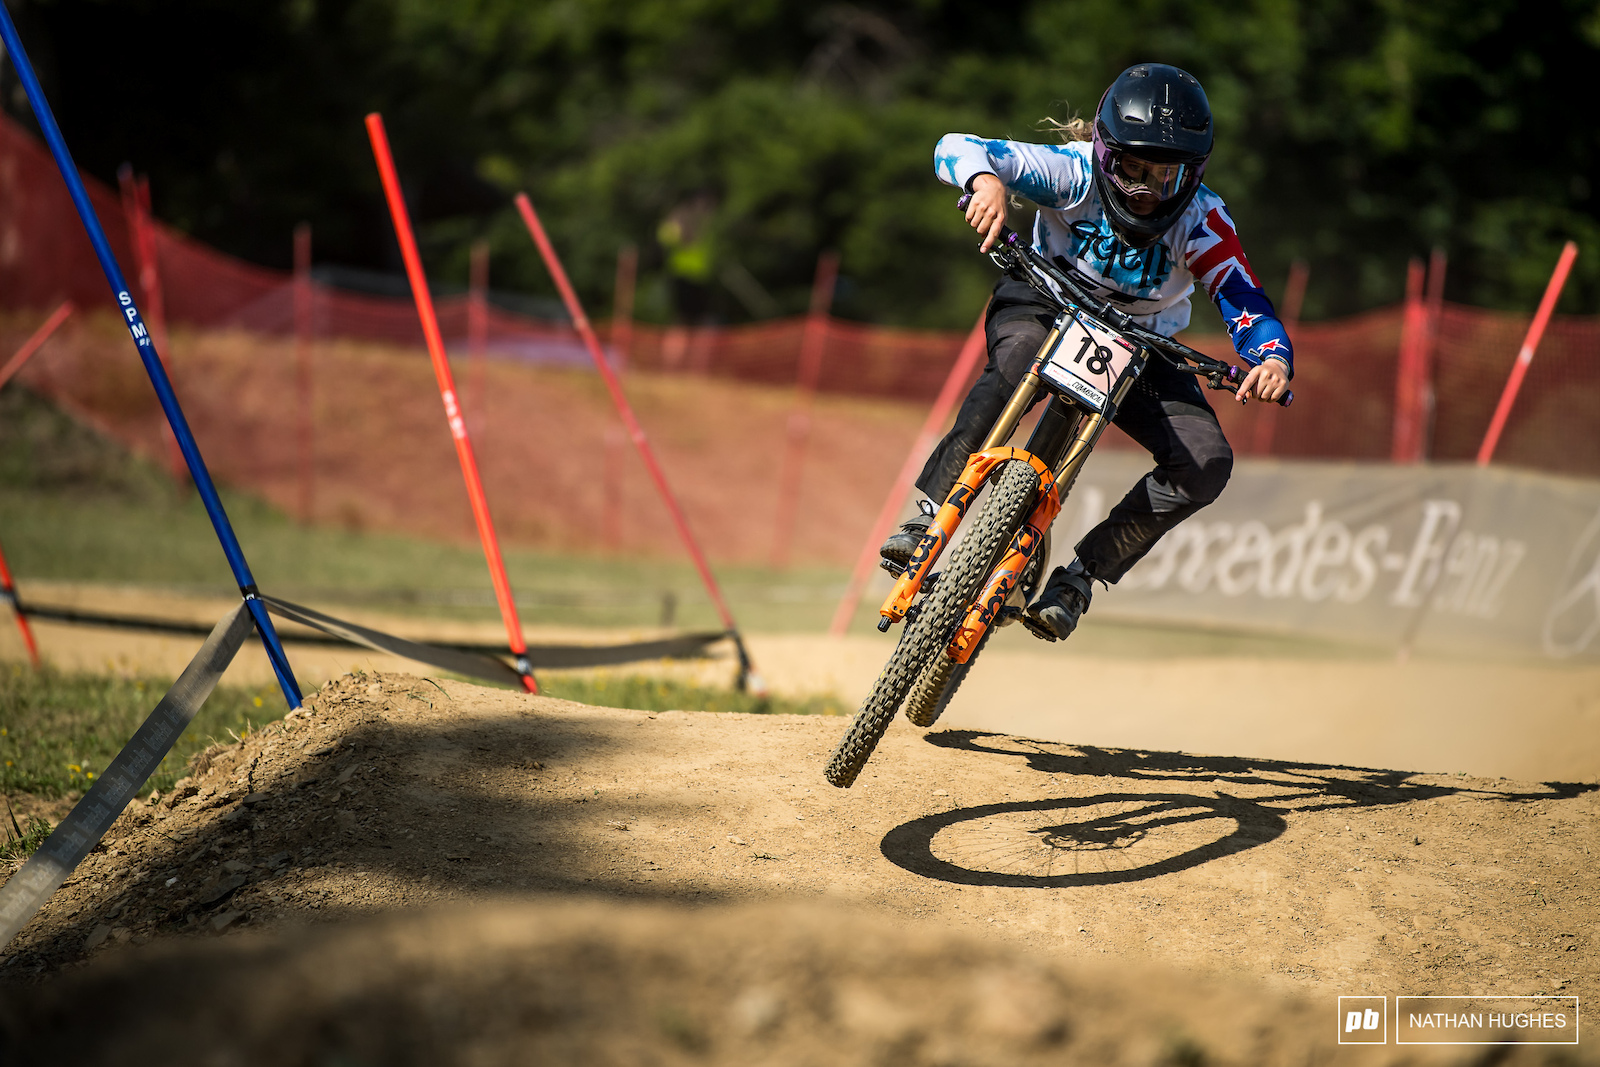 Kiwi national champ Jess Blewitt firing on all cylinders riding to 7th place.